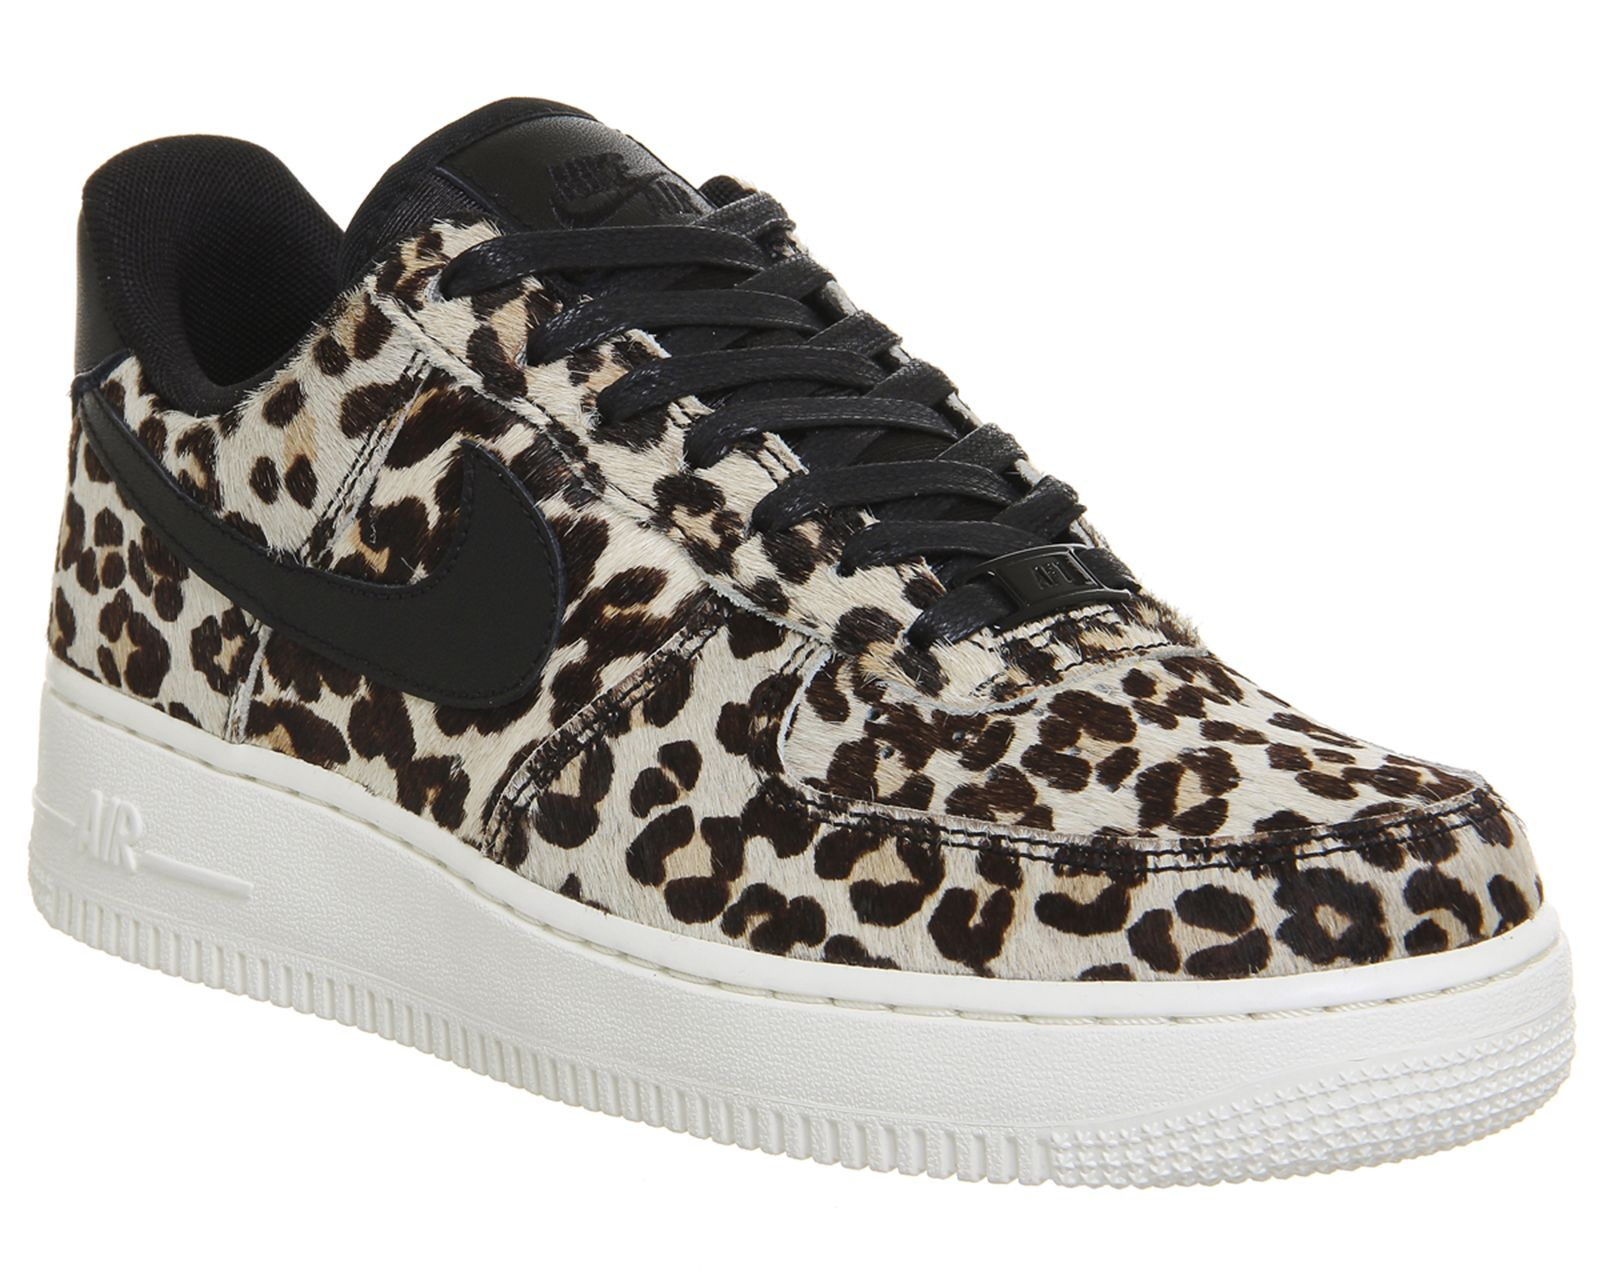 Nike Air Force 1 Lo Leopard Black Sail Trainer Sale UK